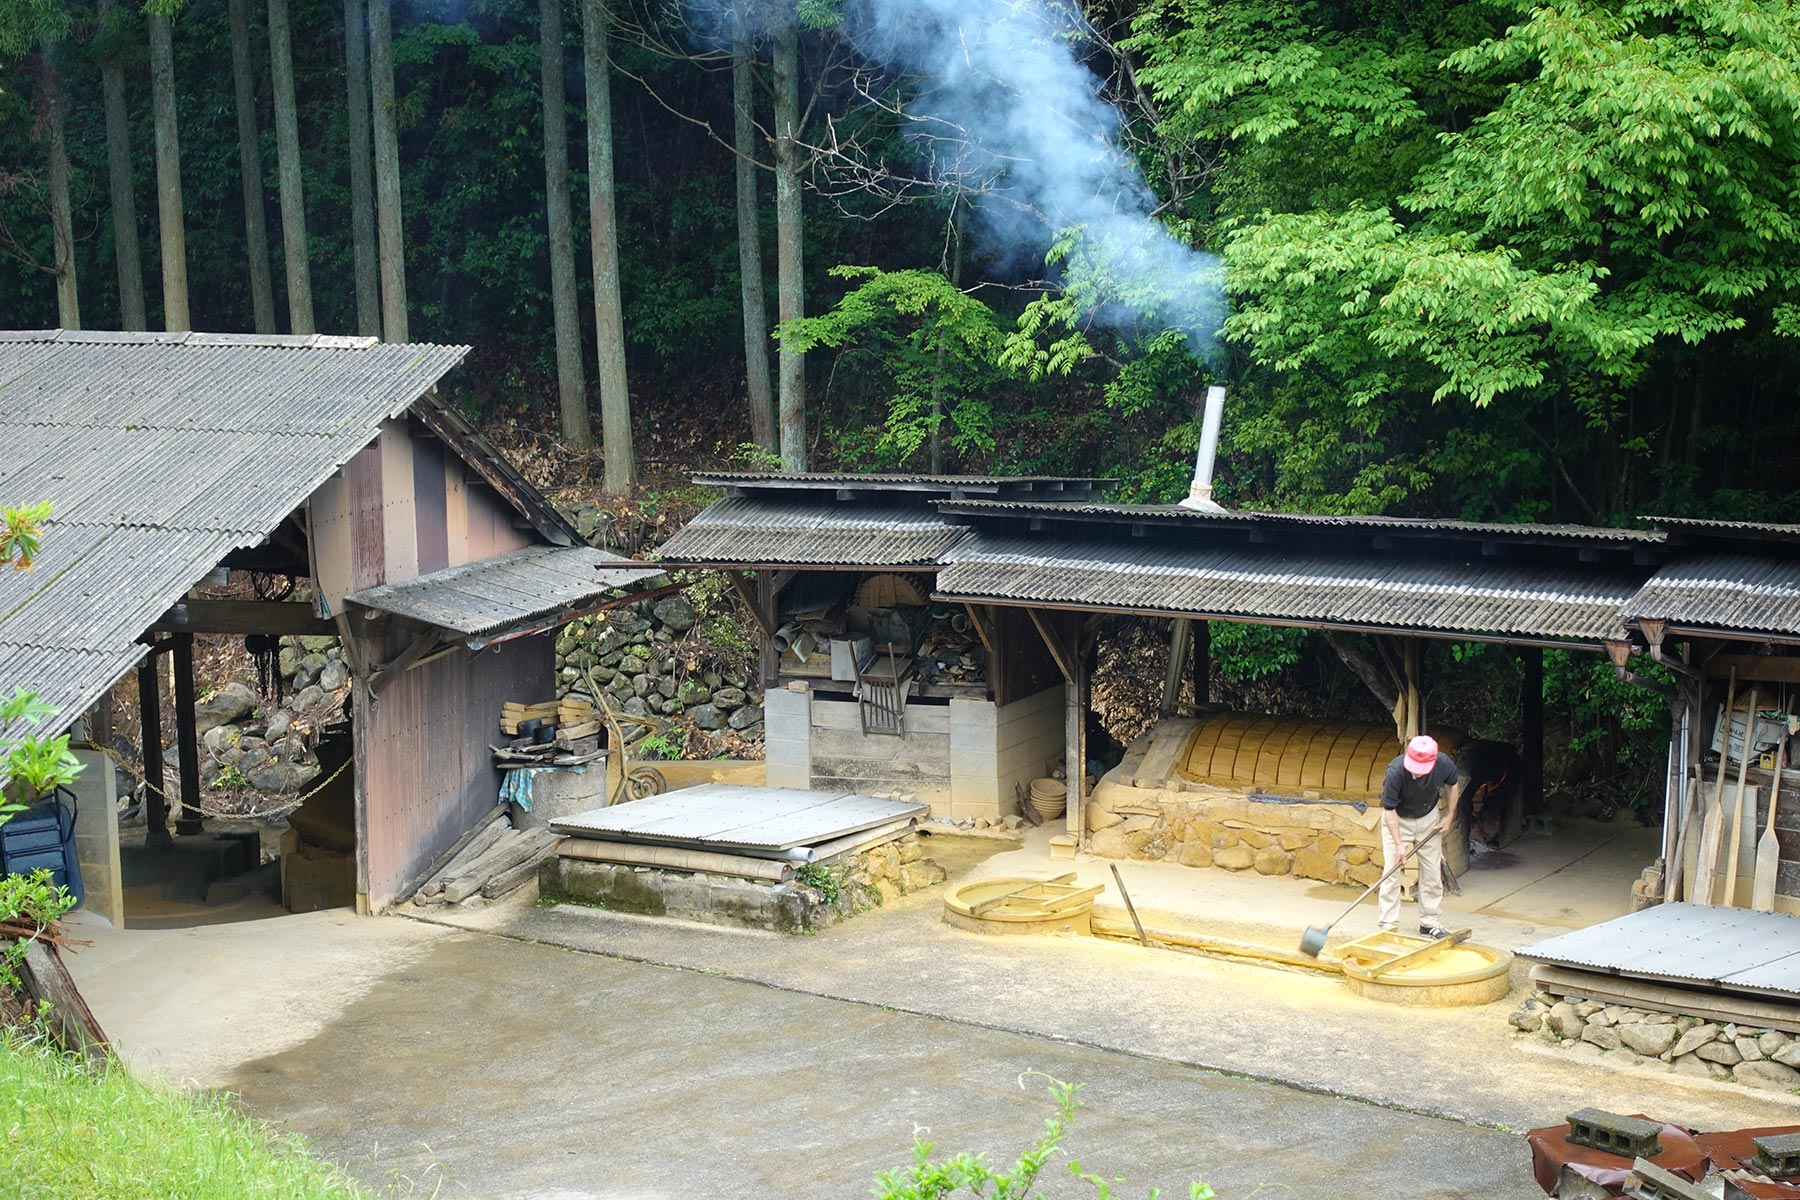 Sakamoto Yoshitaka preparing clay in Onta. The clay is being dried on top of a drying kiln and to the left is a hut where the kara-usu -traditional clay-crushing devices- are to be reinstalled.